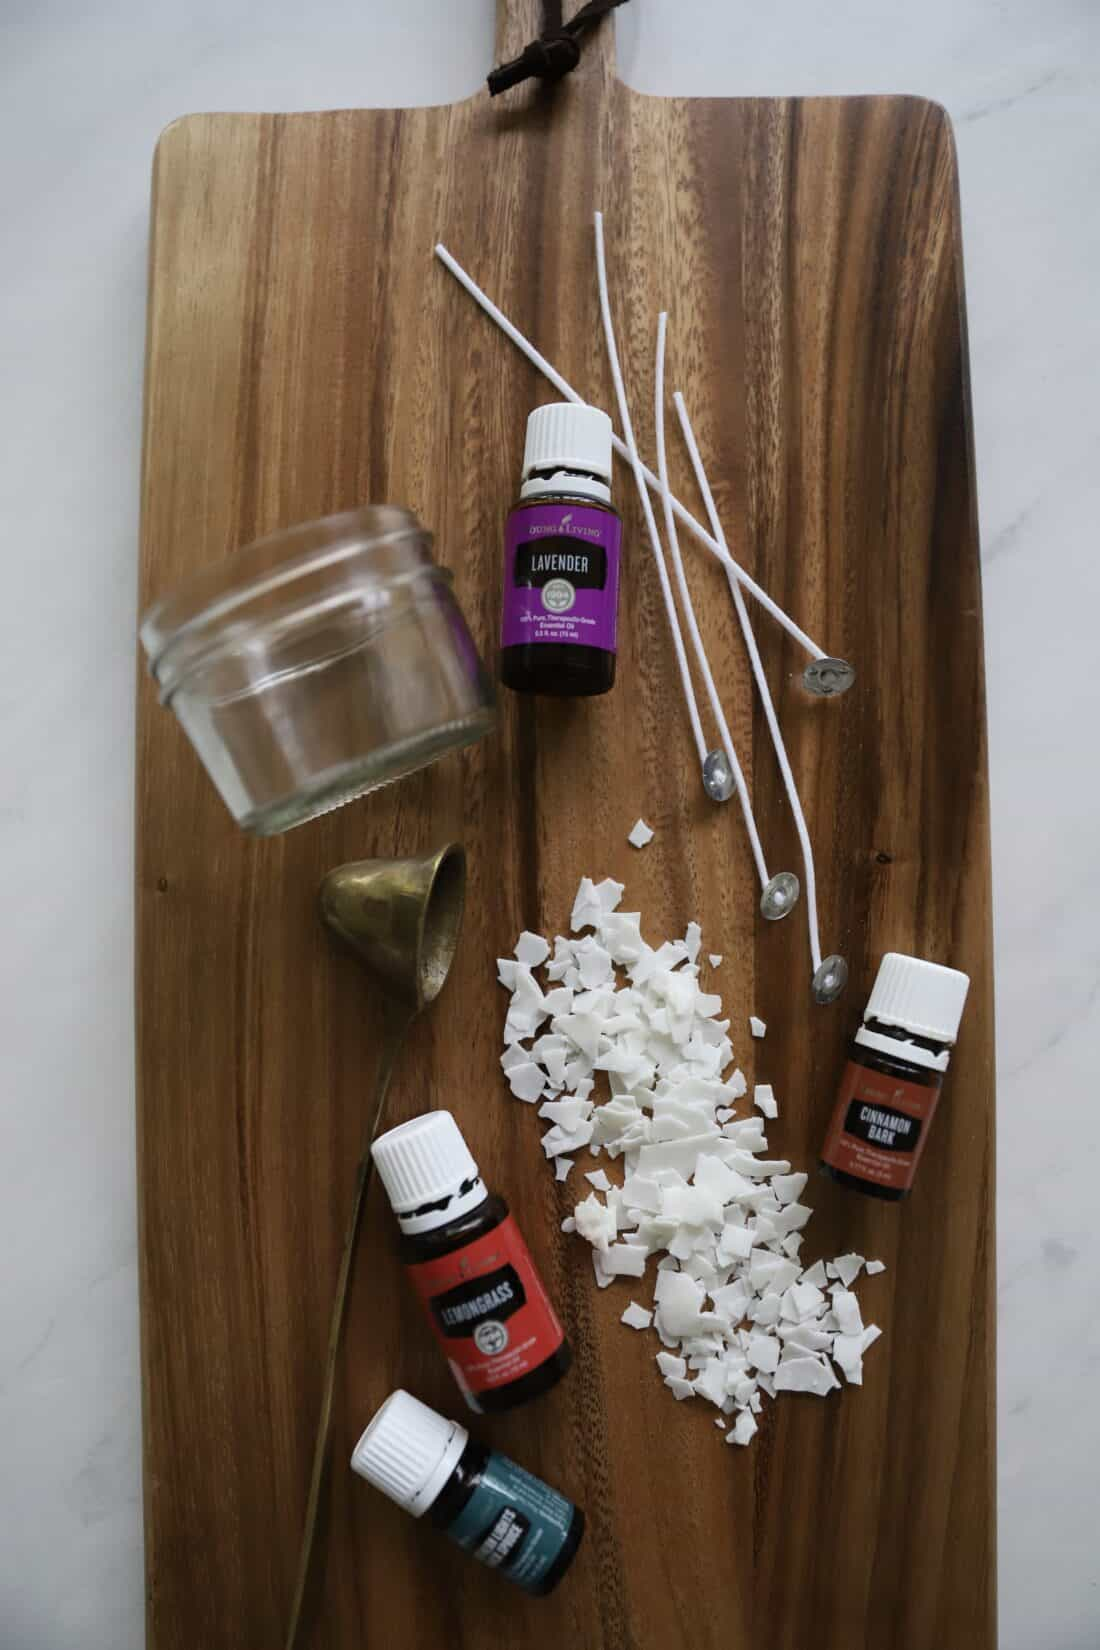 all of the supplies you need to make DIY essential oil candles from home